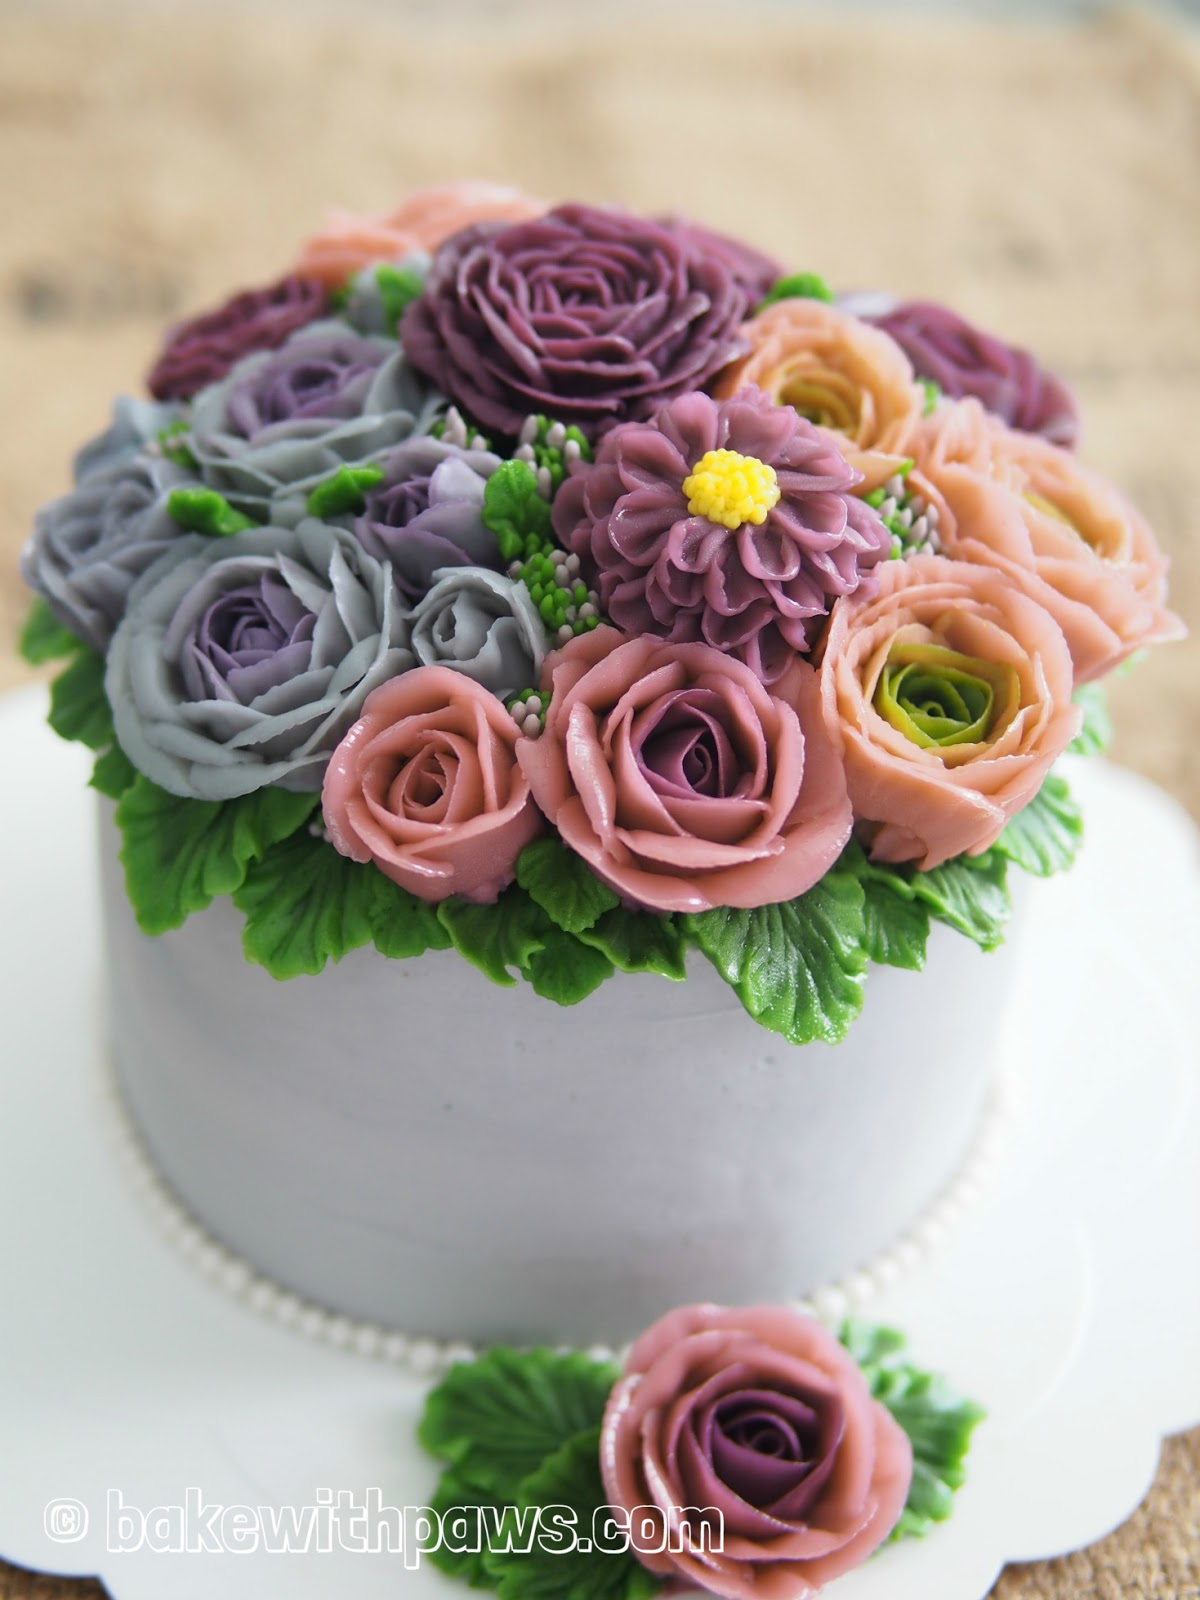 Korean Style Buttercream Flowers Cake 23 Bake With Paws